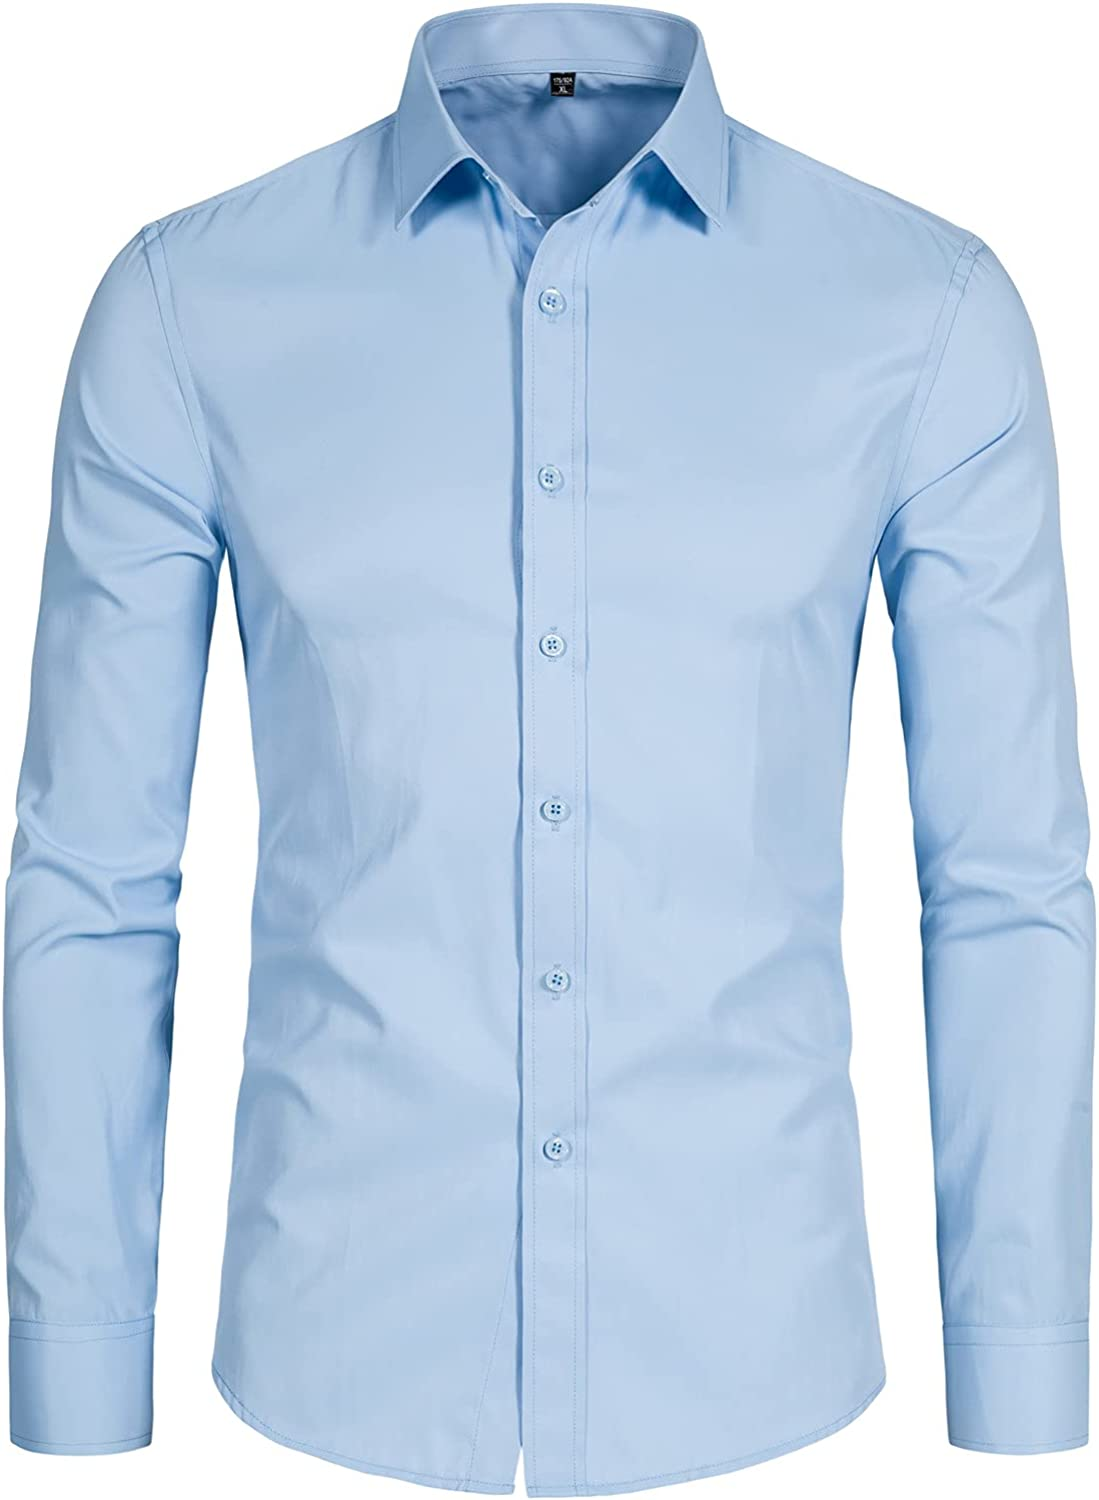 Max 66% OFF DELCARINO Men's Long Sleeve Button Up Slim Solid Casu Fit Shirts Long Beach Mall